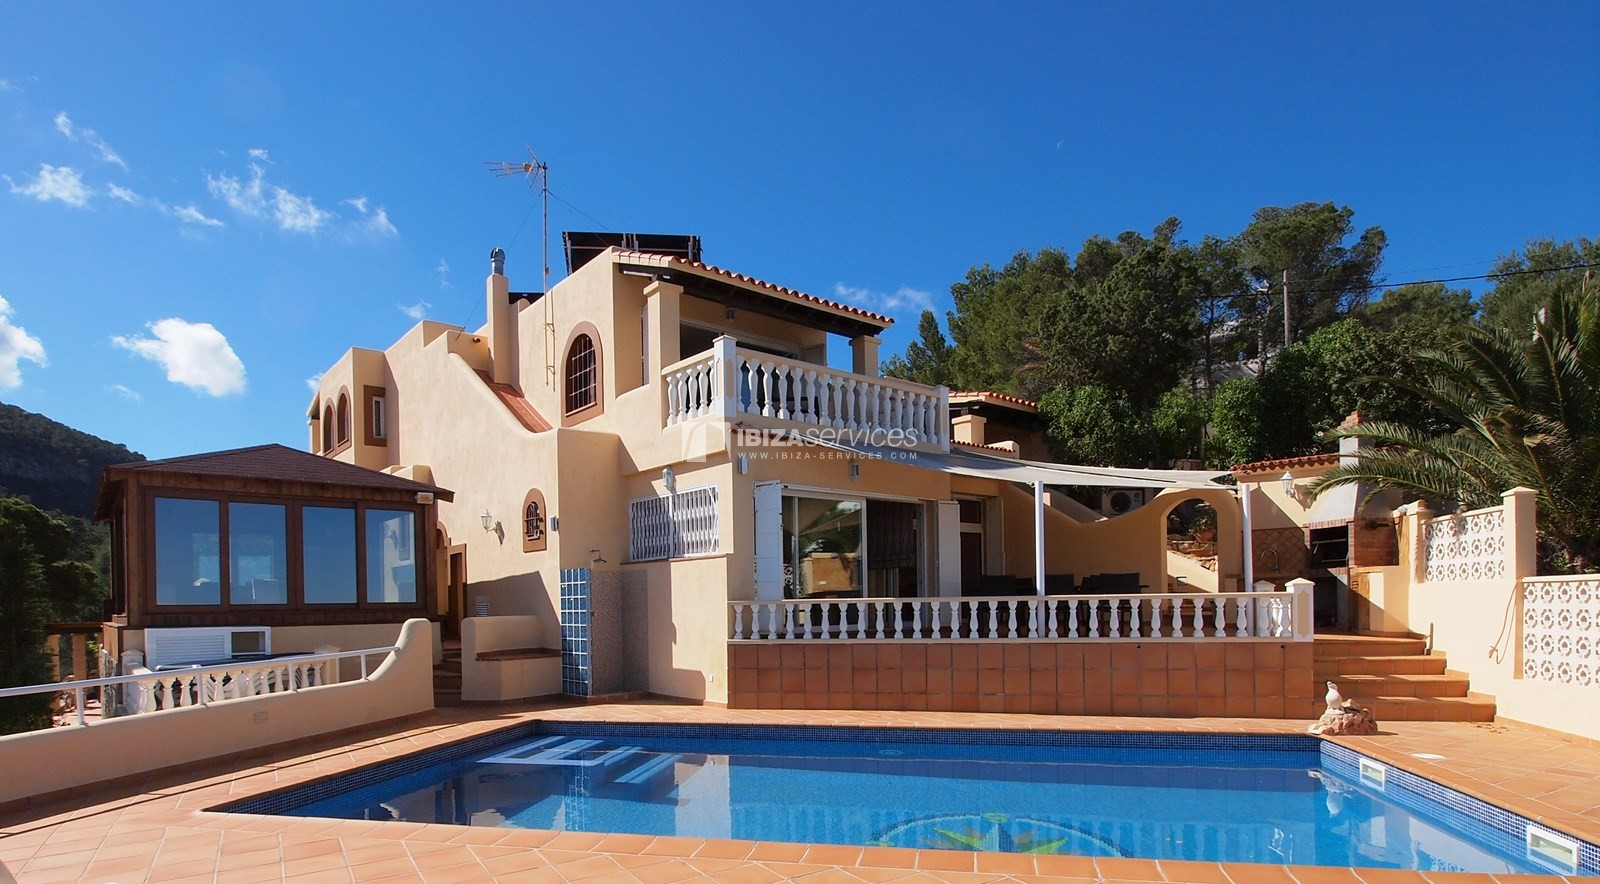 7 bedroom villa overlooking the sea Cala Moli perspectiva 3